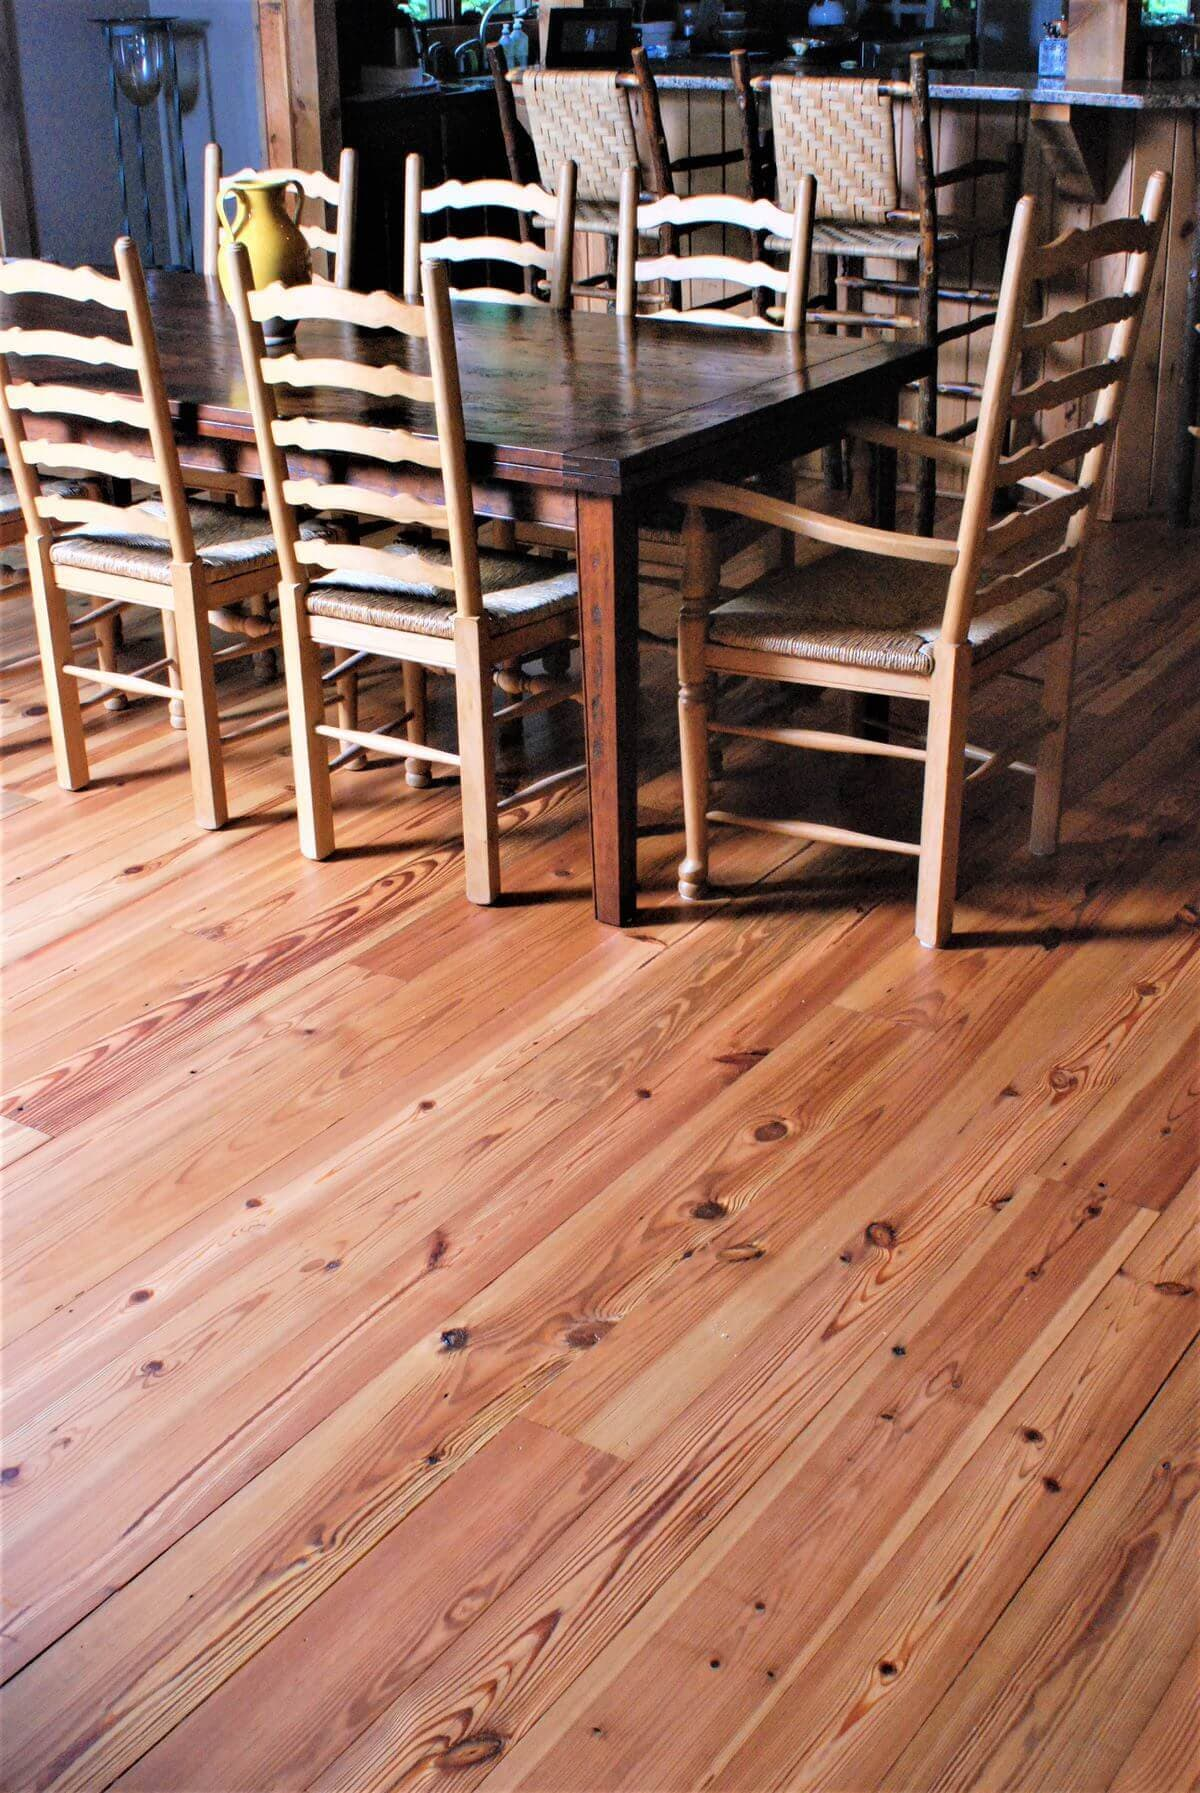 Beautiful wood flooring in dining room showcase refined wood aesthetic.